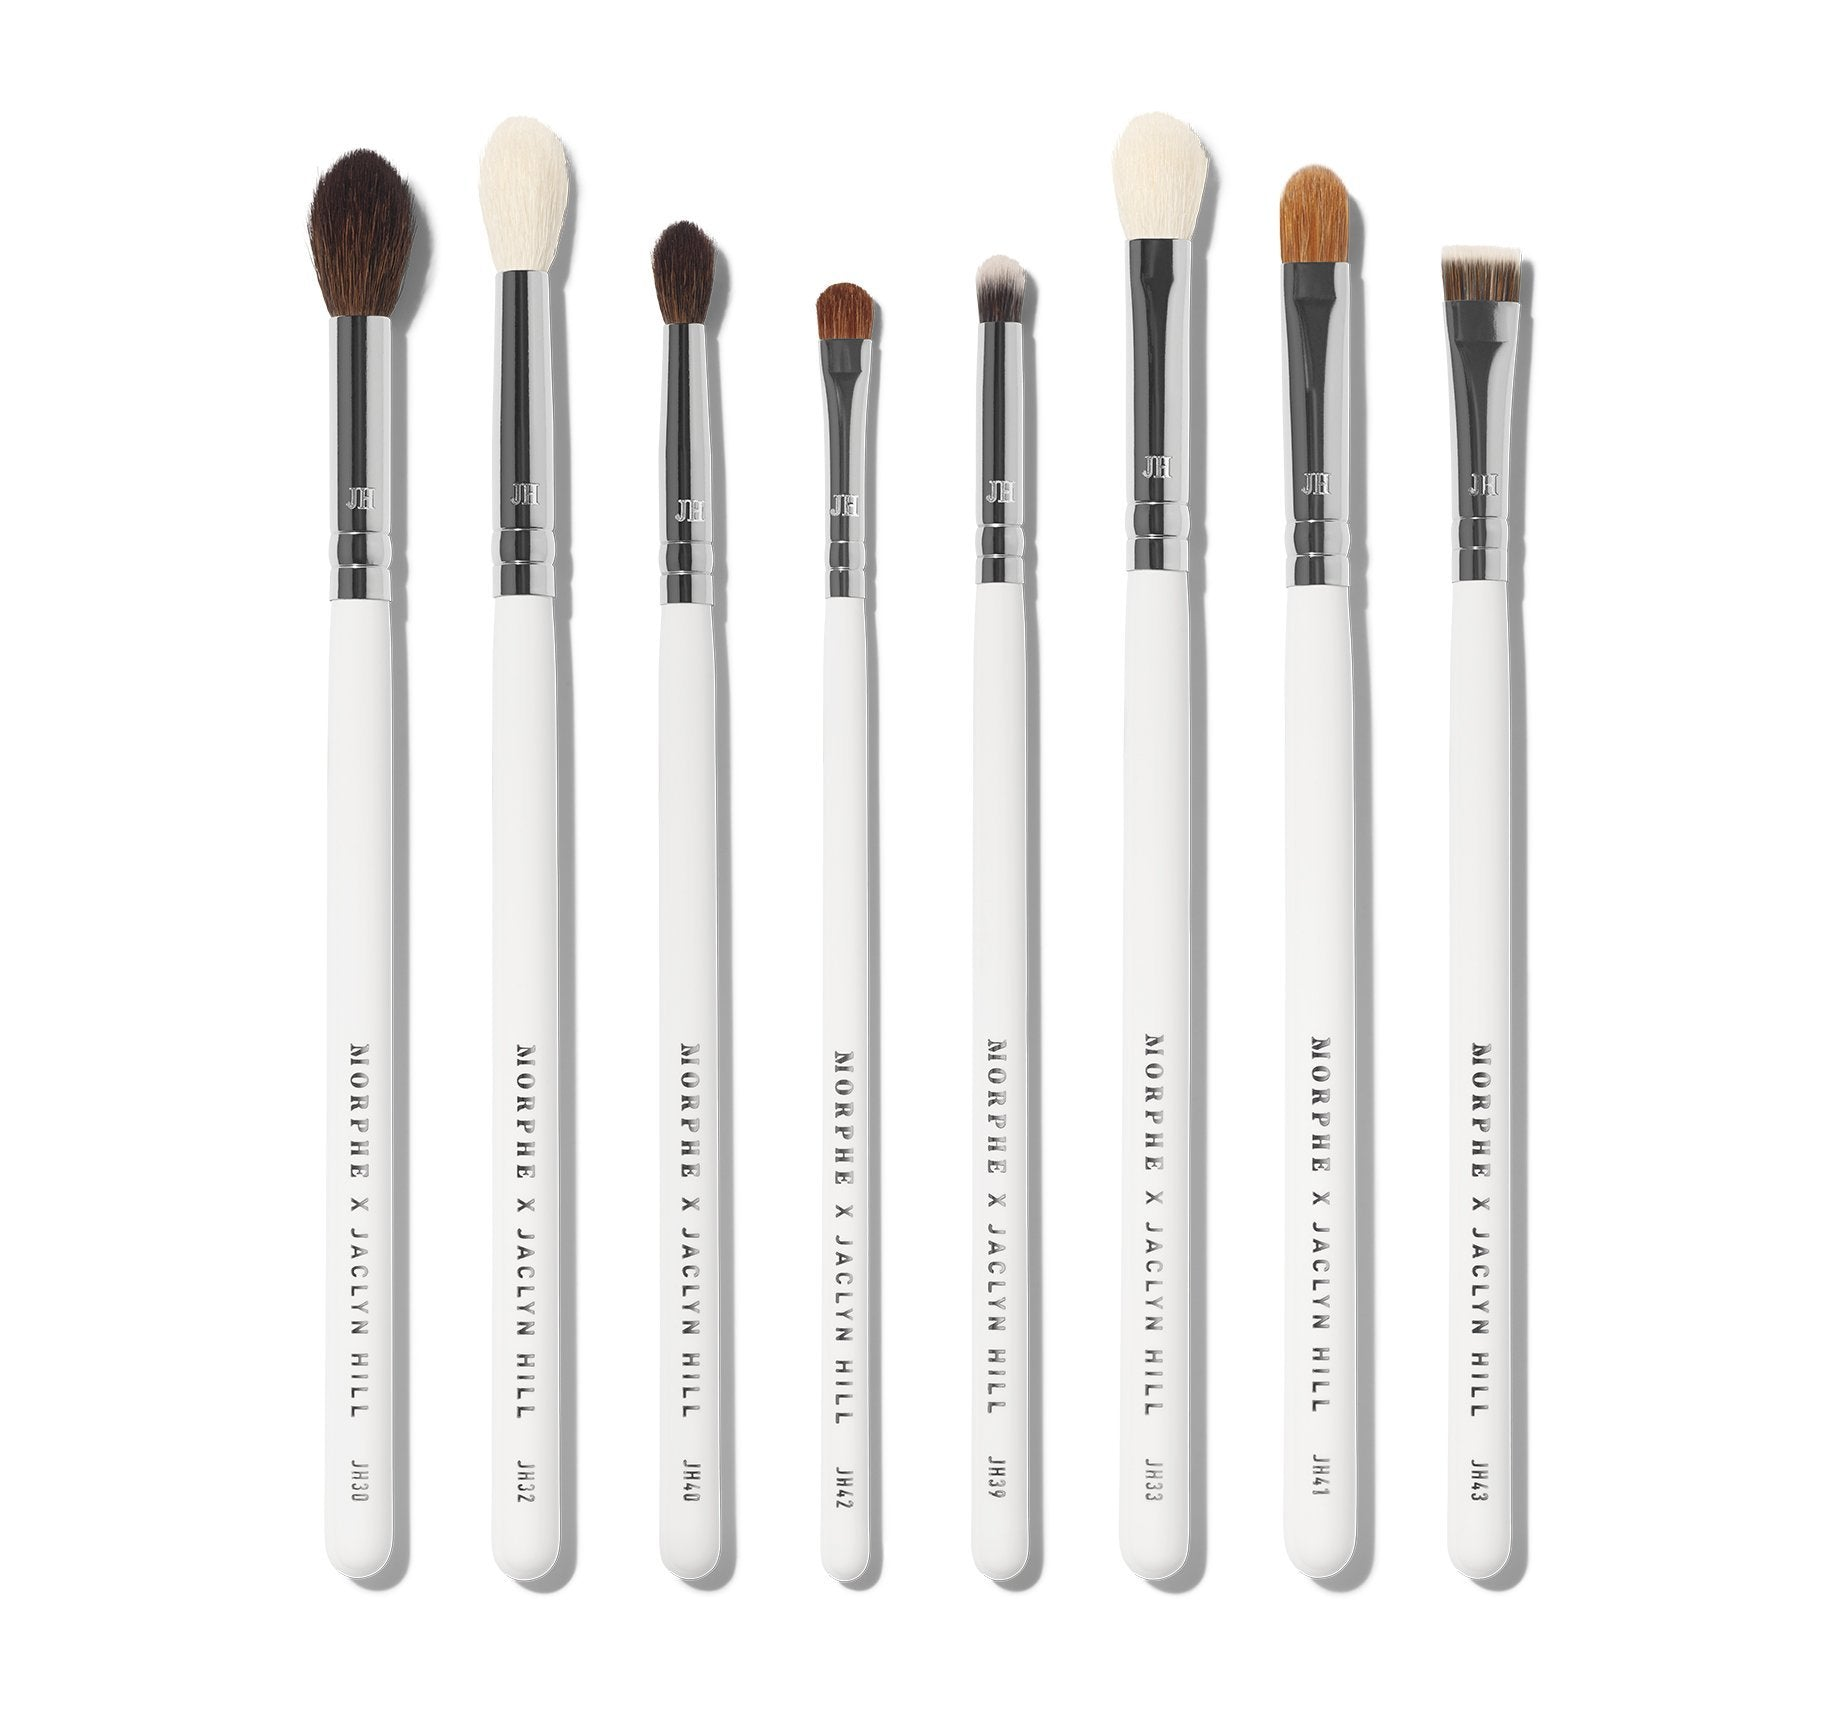 Morphe Jaclyn Hill The Eye Master Collection 8 Brochas Luxor Cosmetics Eyeshadow palettes, makeup brushes and lip colors from james charles, jaclyn hill, and others. morphe jaclyn hill the eye master collection 8 brochas